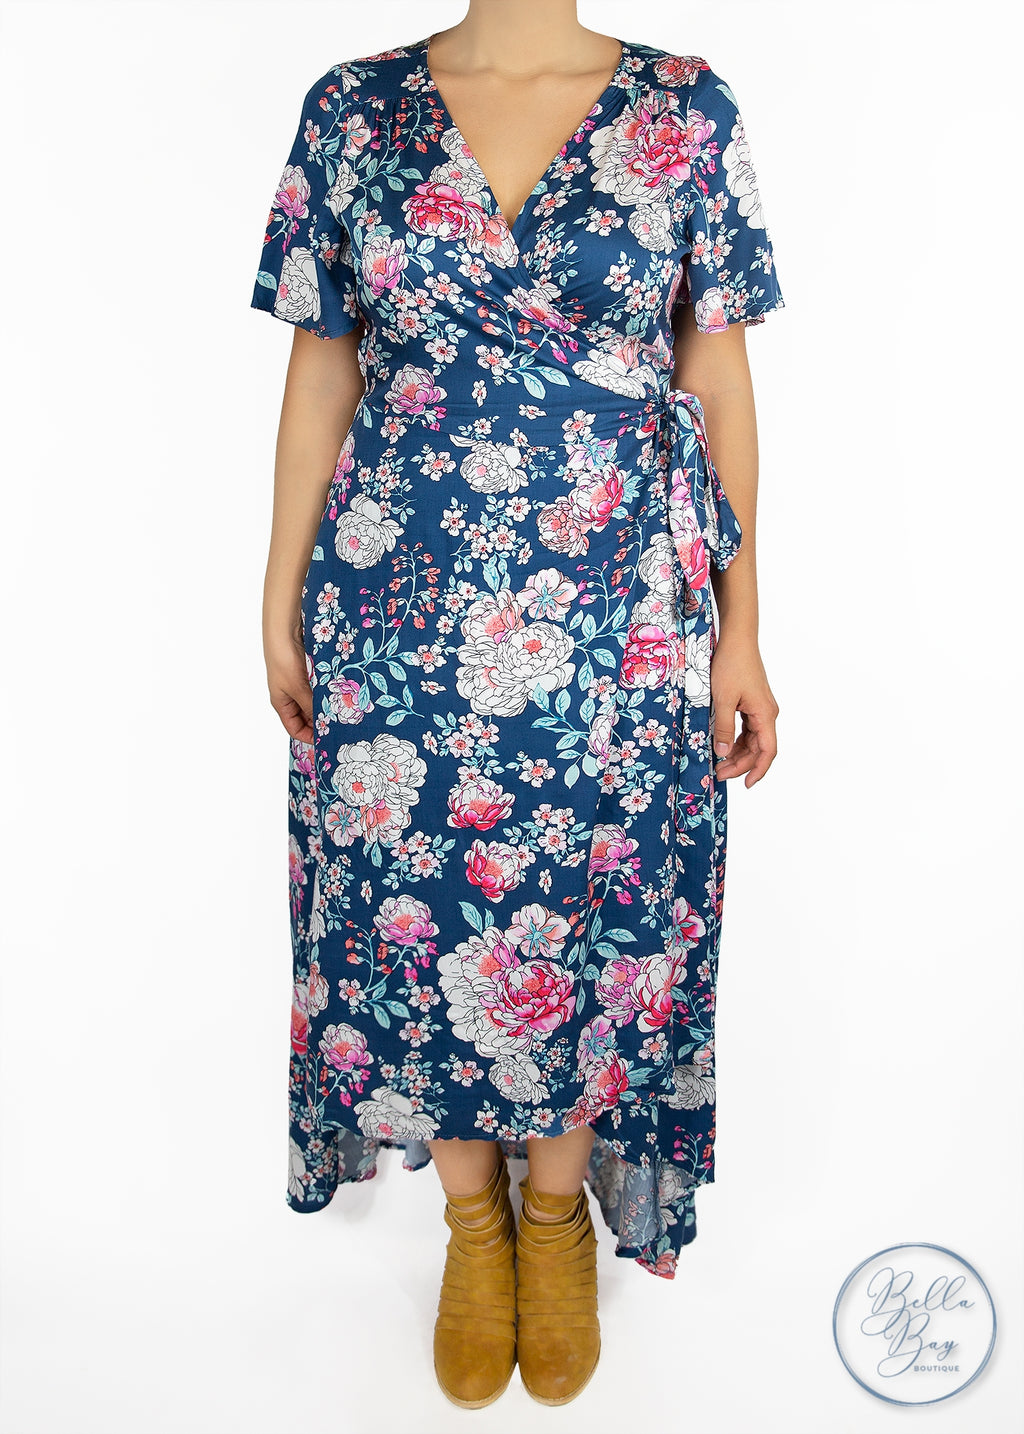 Paisley Raye Primrose Wrap Dress- Blue Floral (2X) - Paisley Raye with Bella Bay Boutique, shop now at  https://shopbellabay.com/ or locally in Newport Oregon